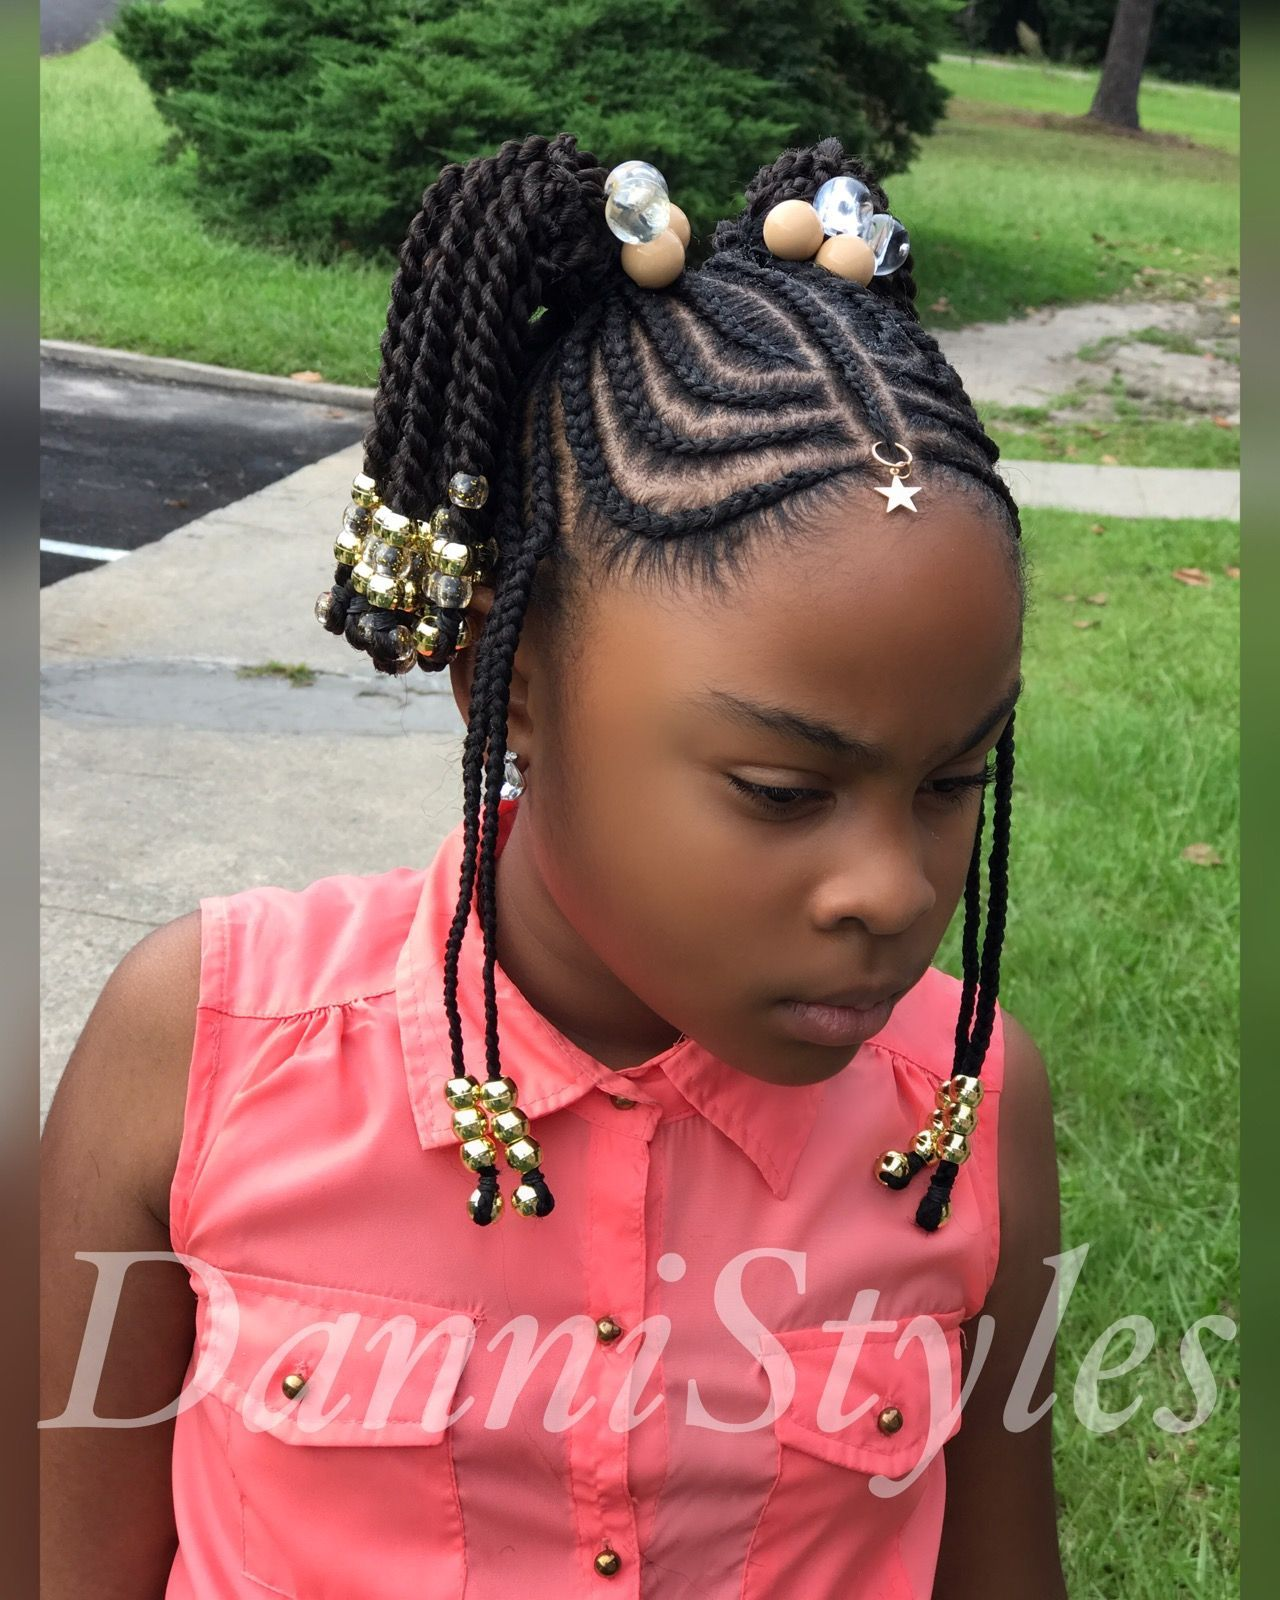 tribal braids for kids #dannistyles | lil diva hair & styles